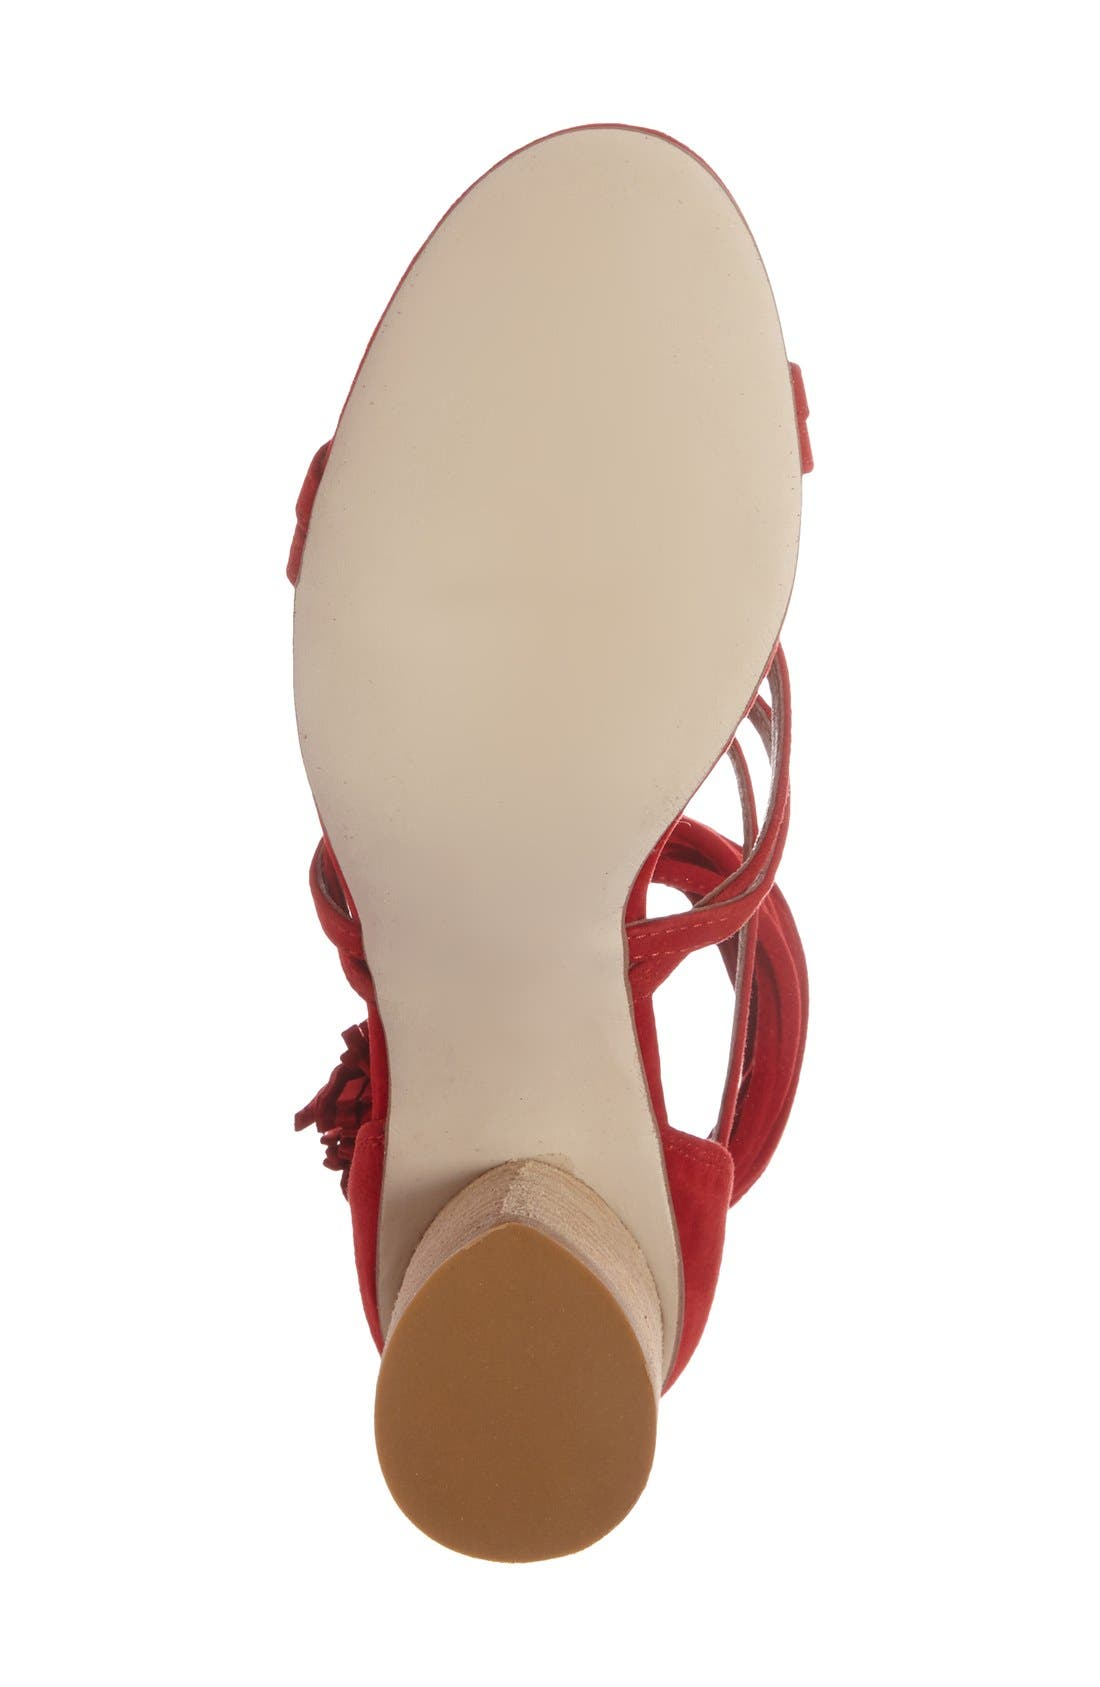 'Despina' Strappy Sandal,                             Alternate thumbnail 4, color,                             Red Suede